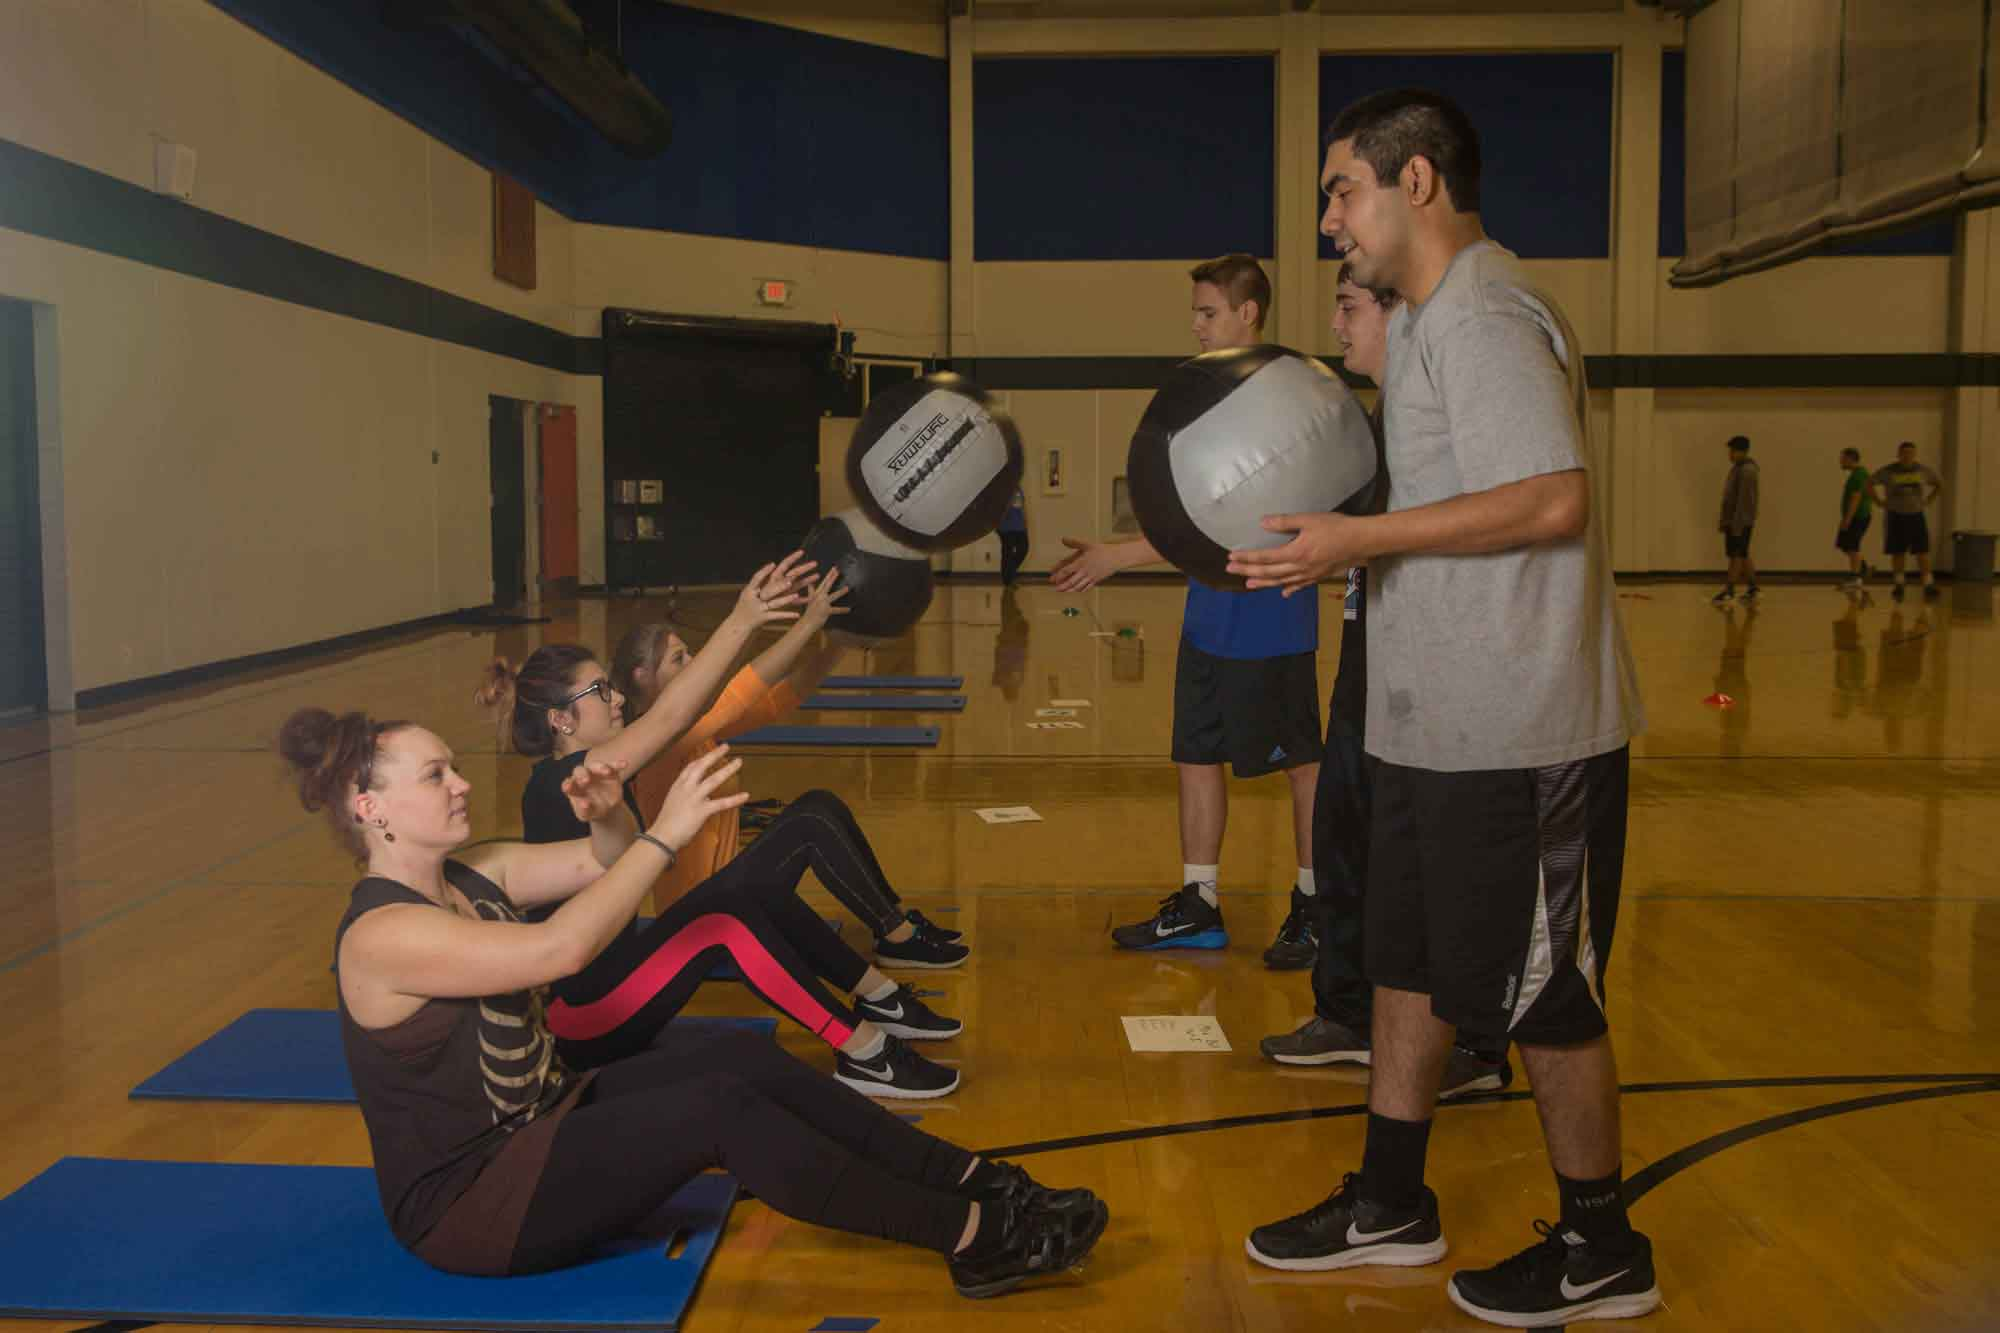 Students practicing with medicine balls